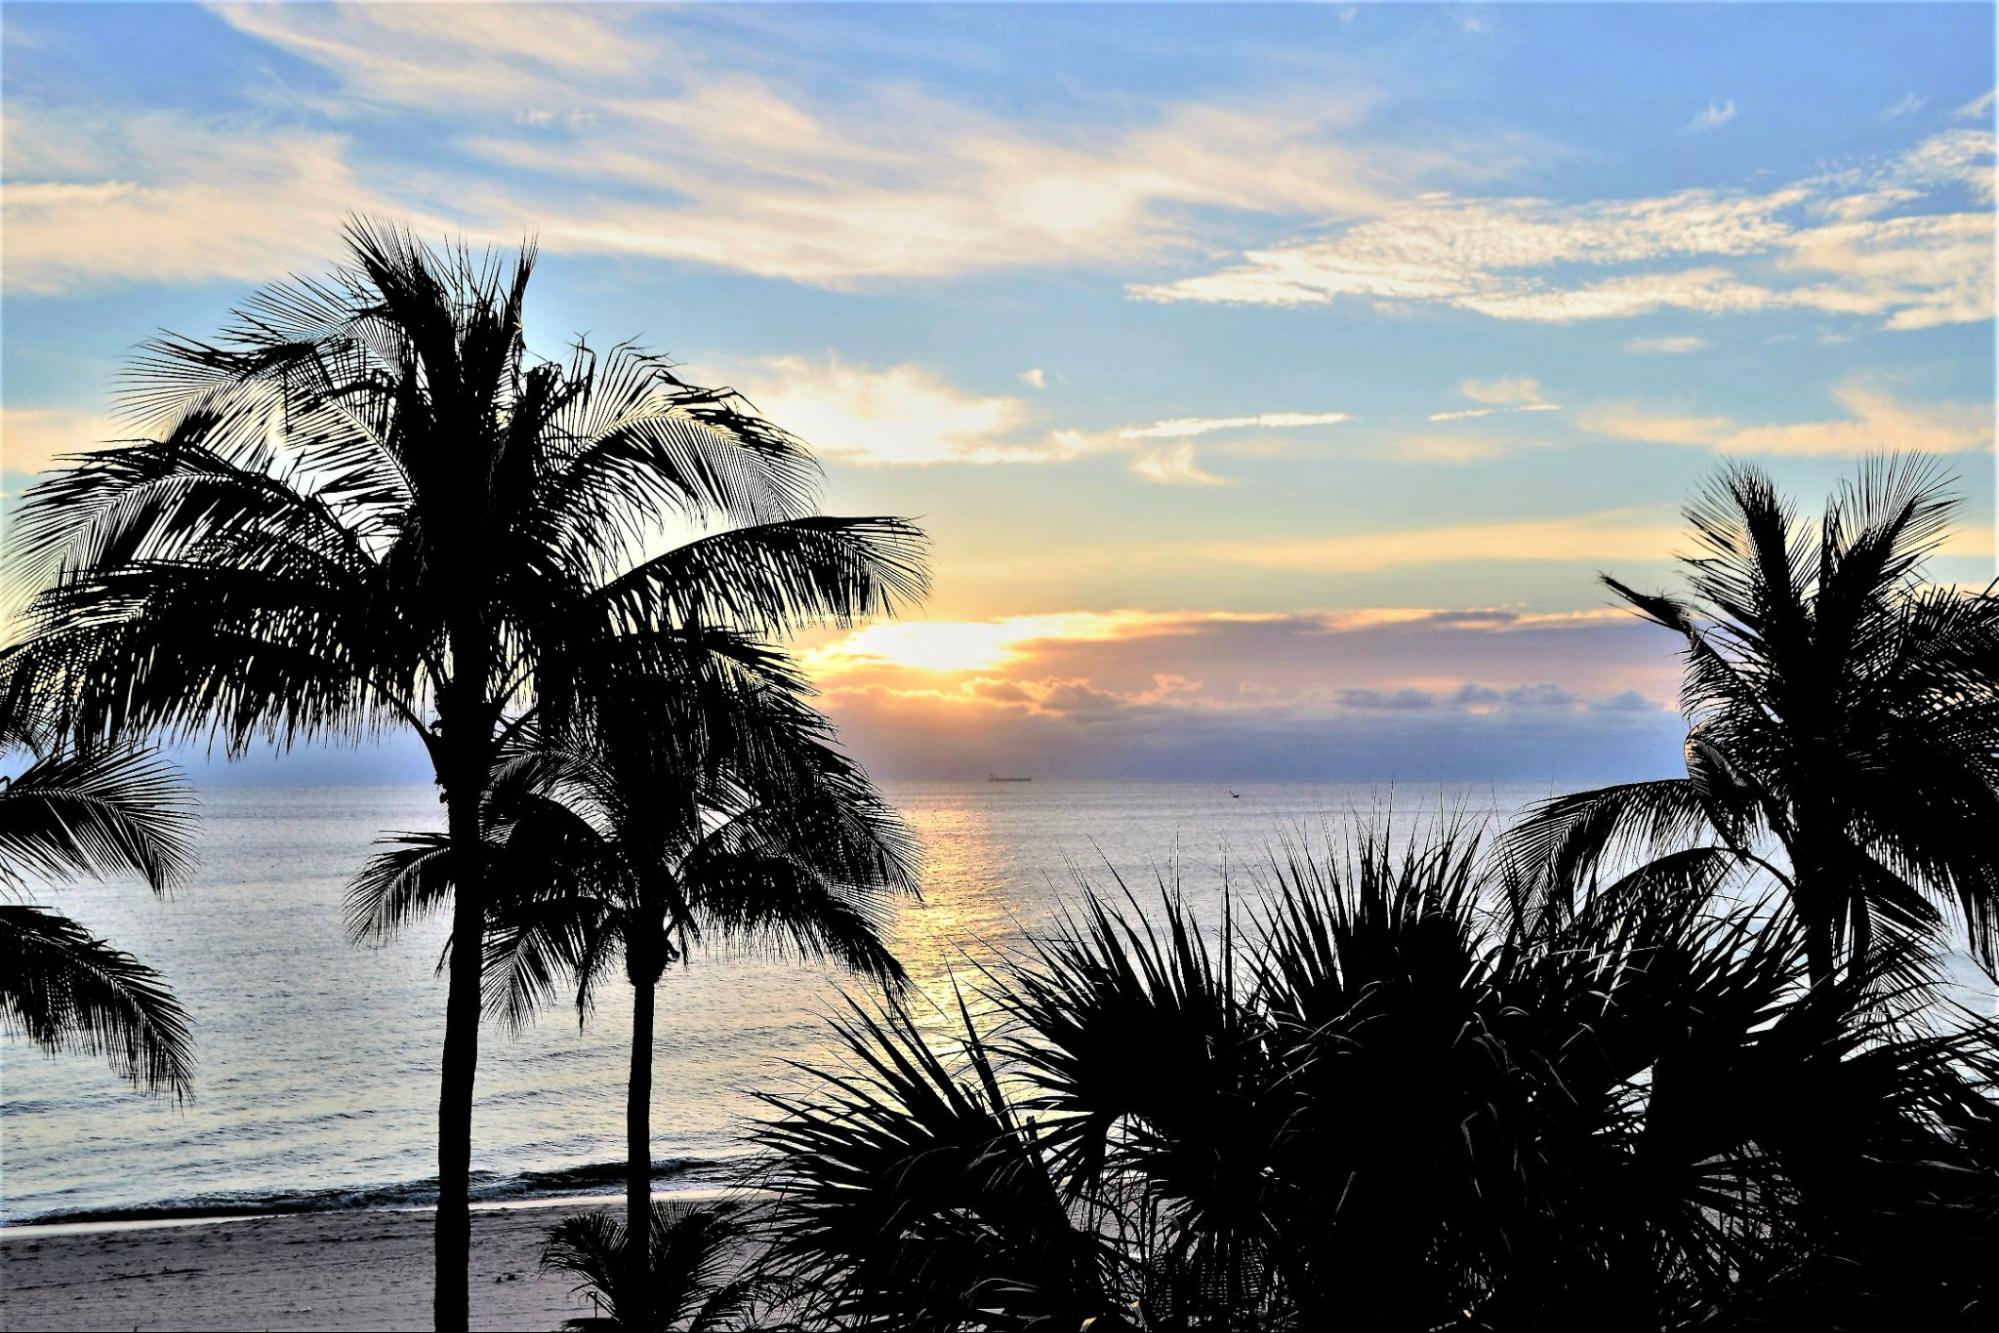 Palm trees in Fort Lauderdale